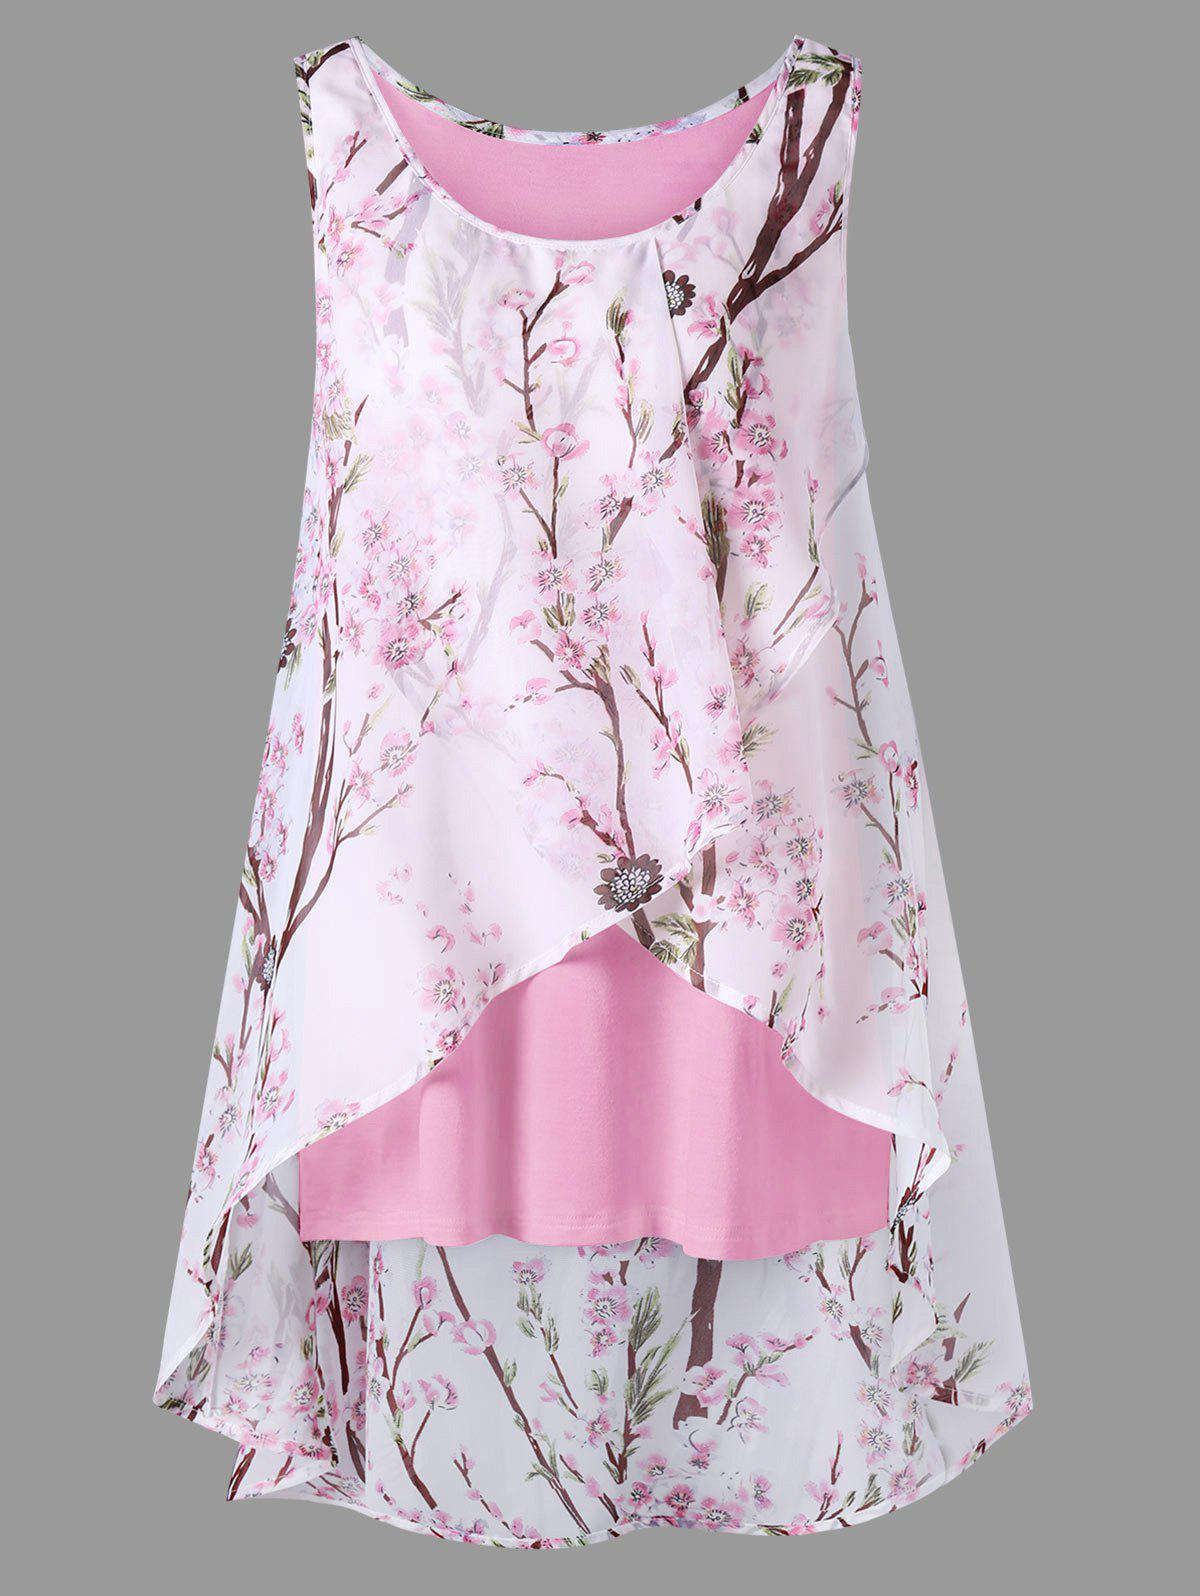 Plus Size Overlap Tiny Floral Sleeveless TopWOMEN<br><br>Size: 3XL; Color: LIGHT PINK; Material: Polyester; Shirt Length: Long; Sleeve Length: Sleeveless; Collar: Scoop Neck; Style: Casual; Season: Summer; Pattern Type: Floral; Weight: 0.2700kg; Package Contents: 1 x Blouse;